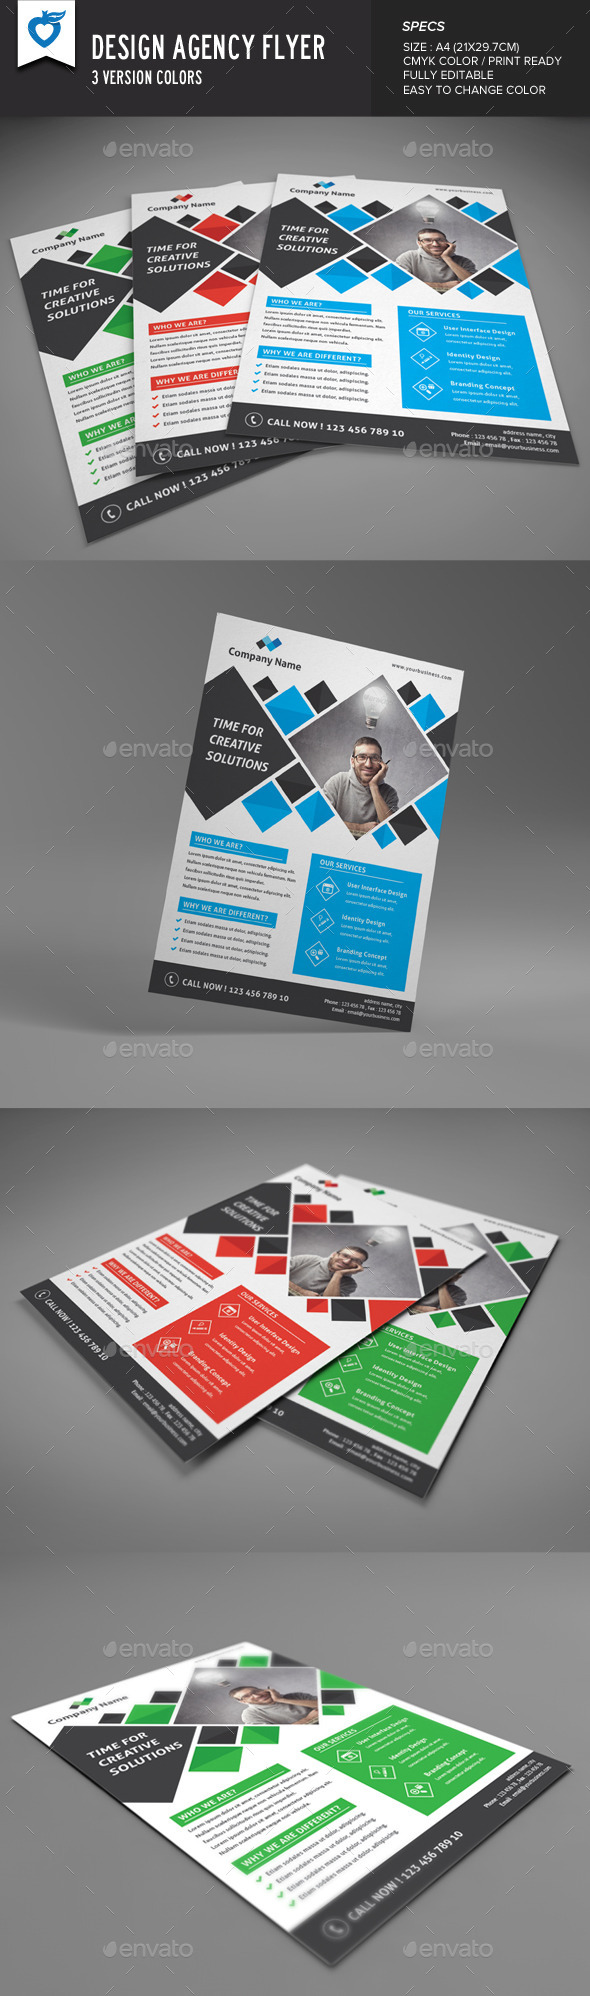 Design Agency Flyer - Corporate Flyers